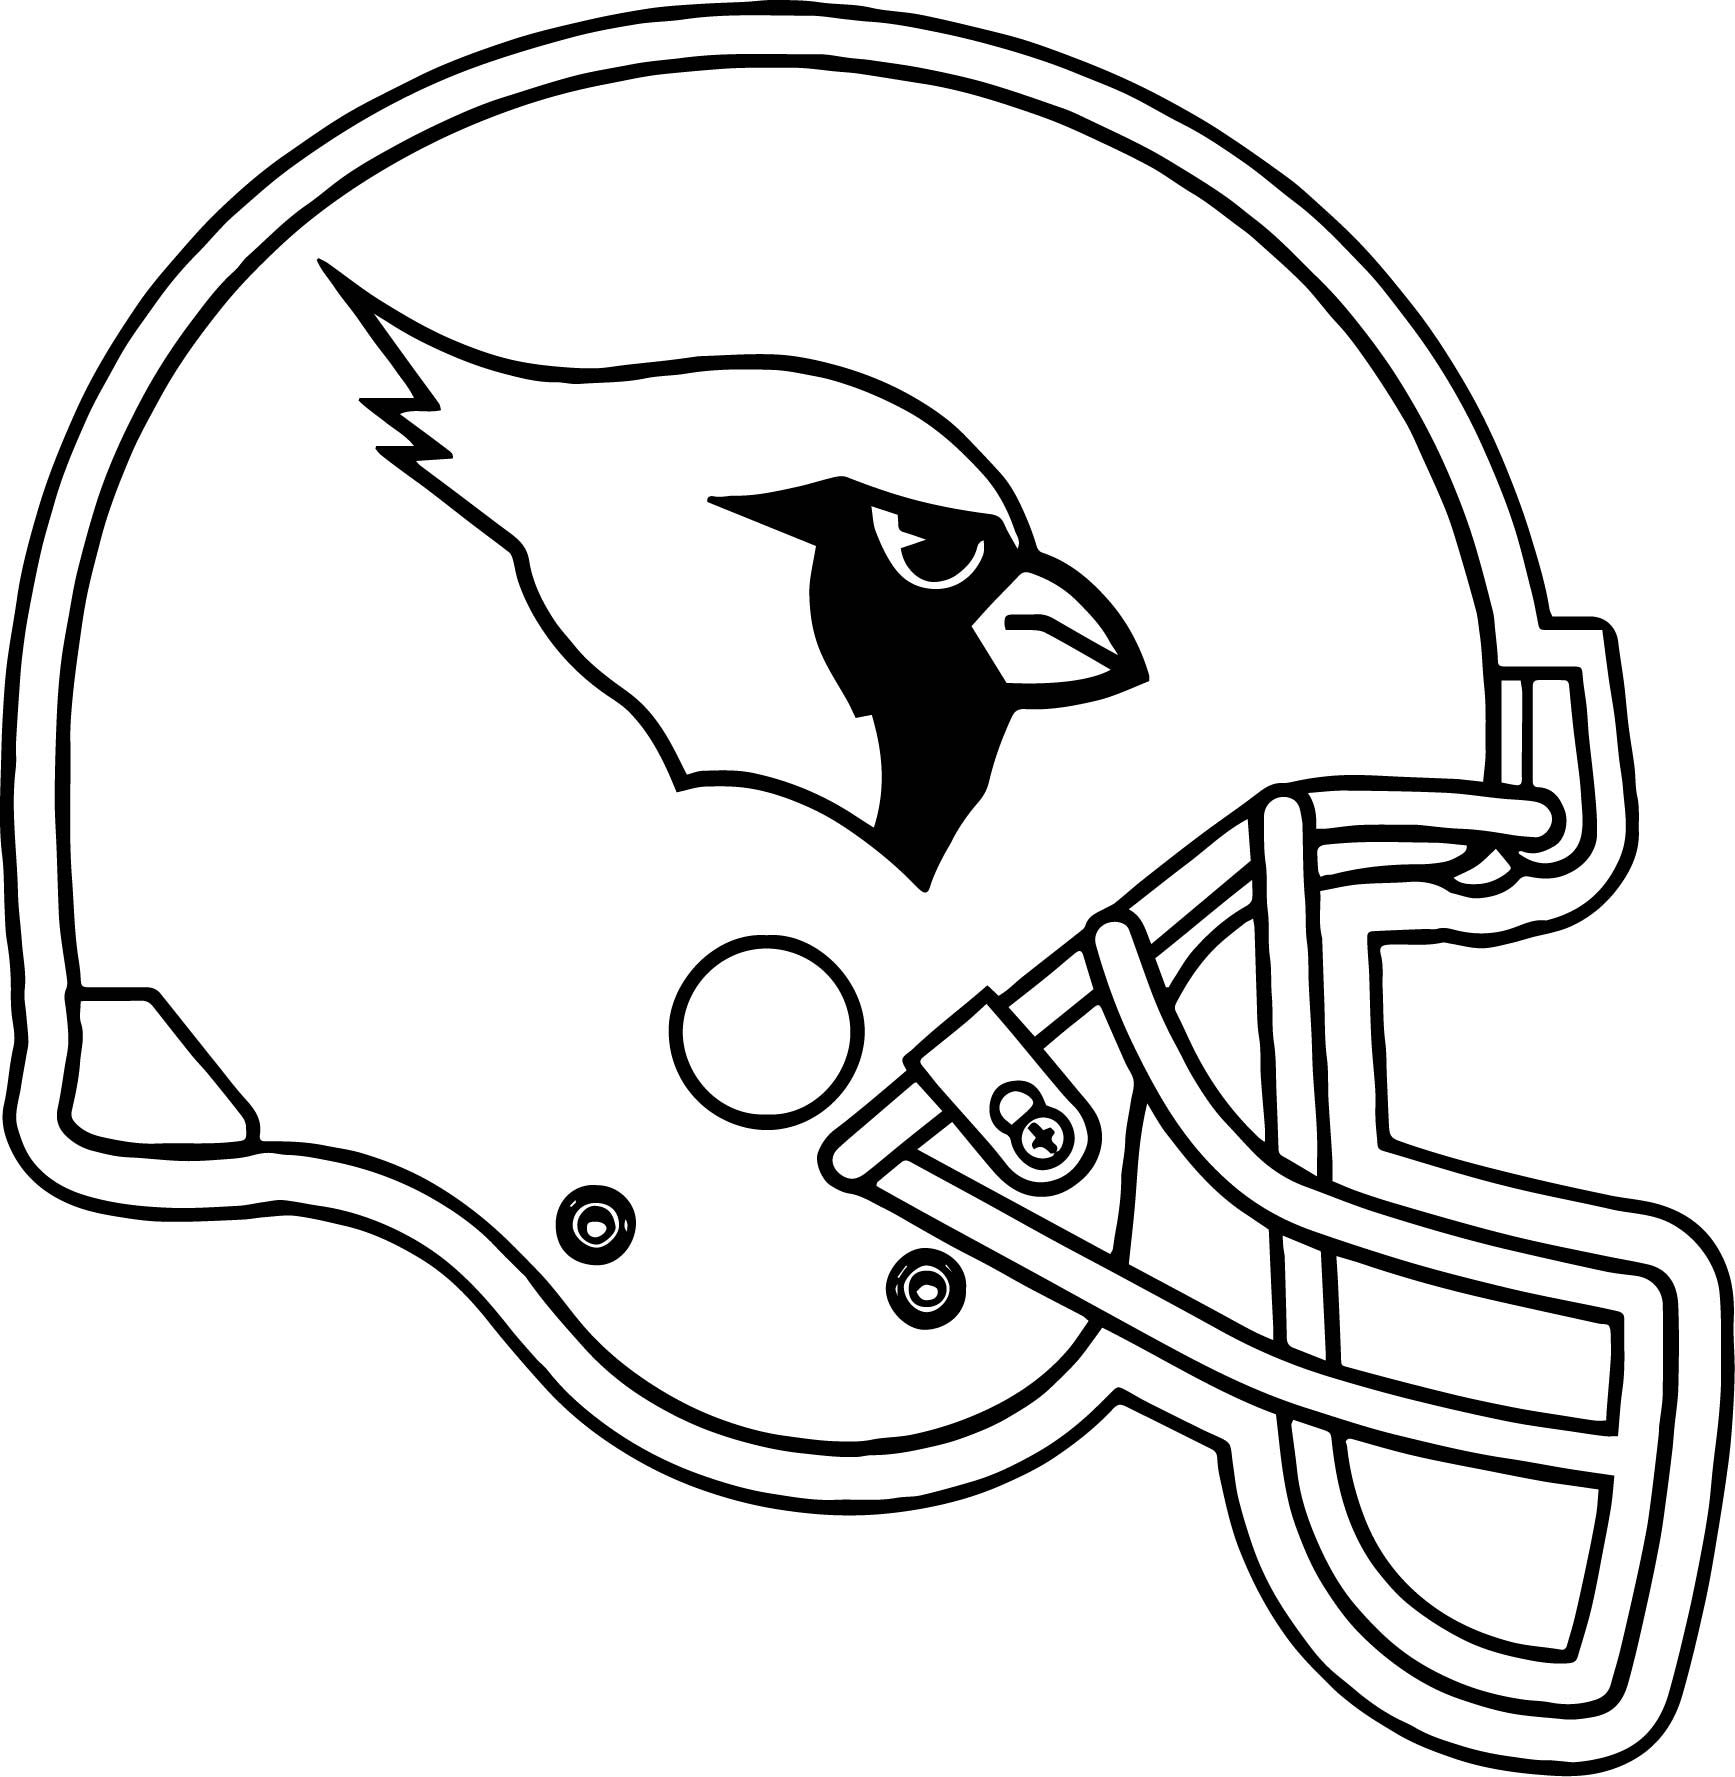 1735x1777 Arizona Cardinals Helmet Coloring Page